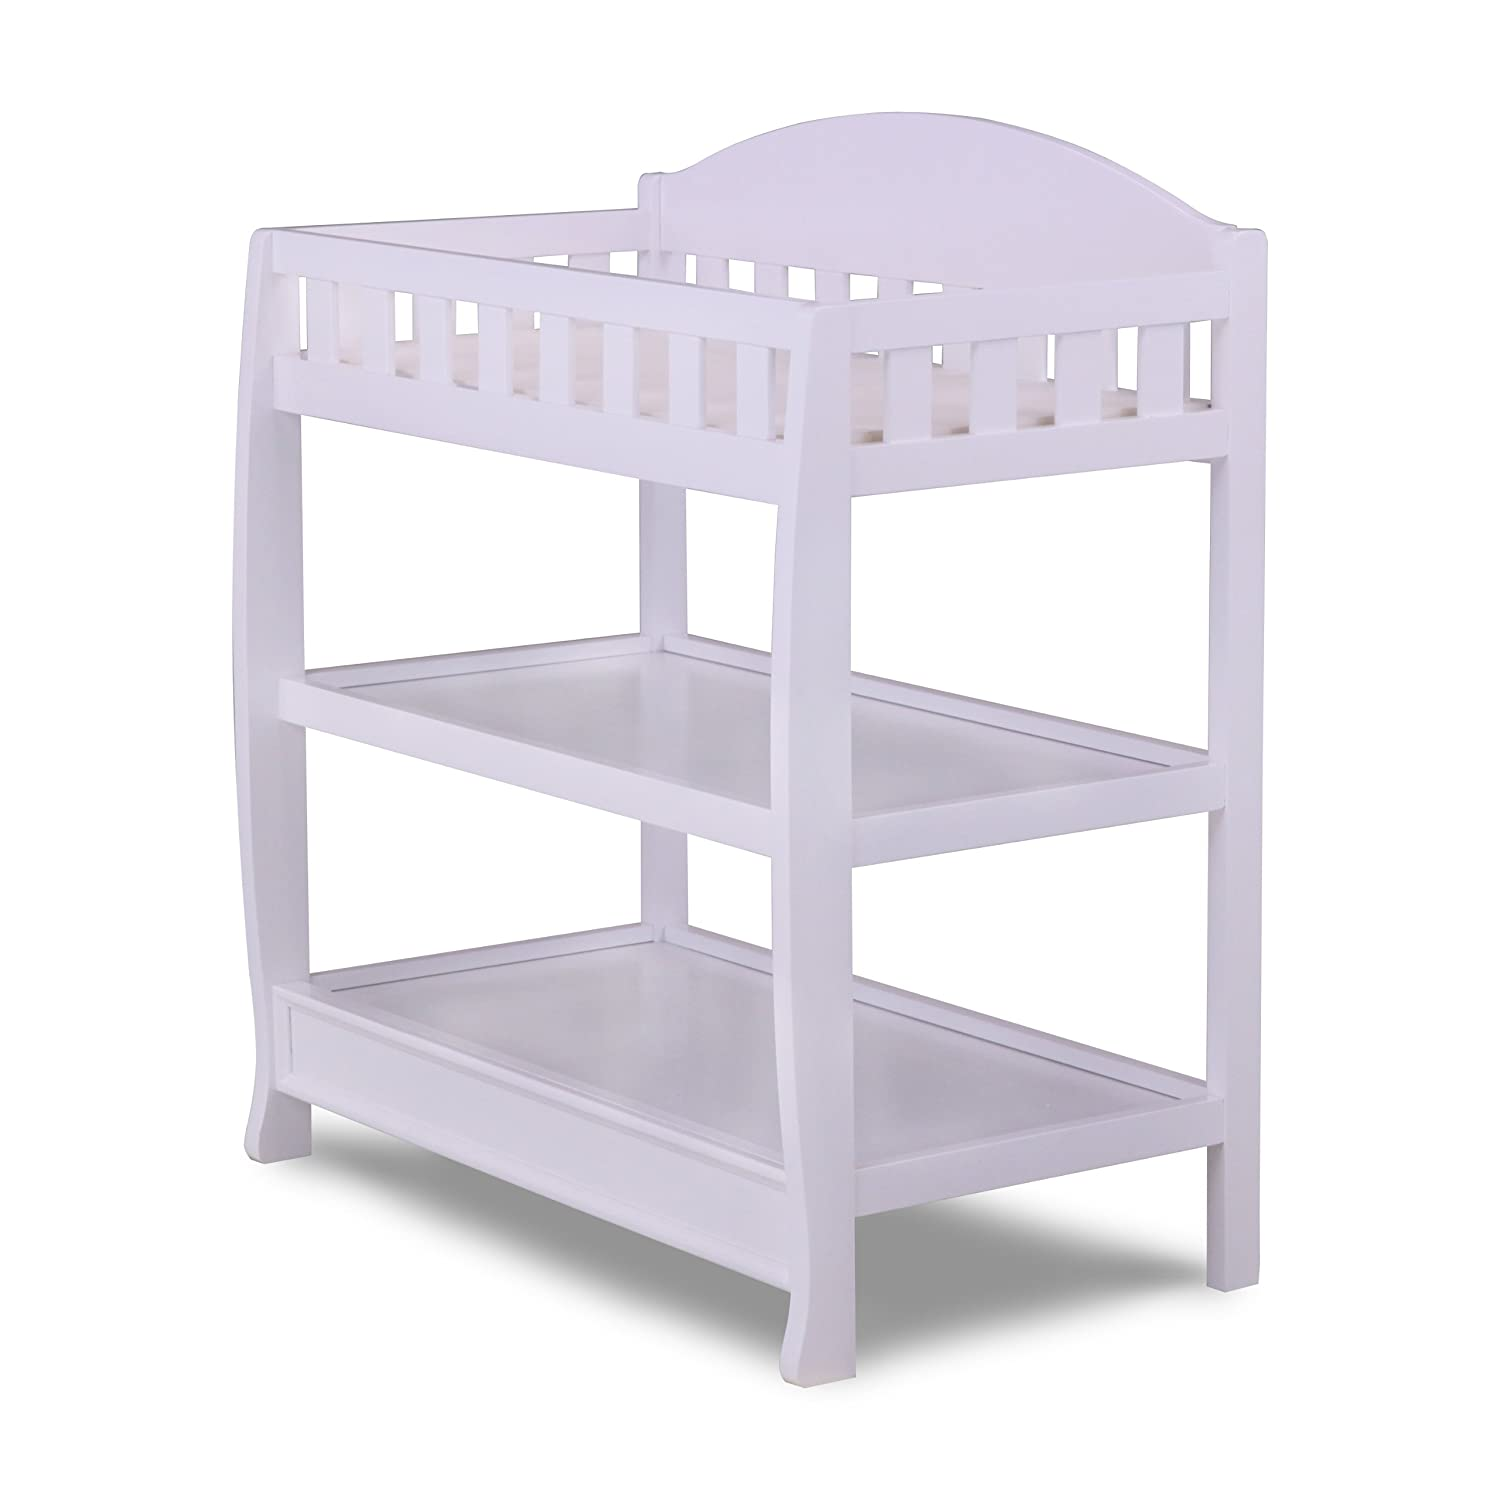 gulliver changing table ikea best 25 cloth diaper organization ideas on pinterest organizing. Black Bedroom Furniture Sets. Home Design Ideas